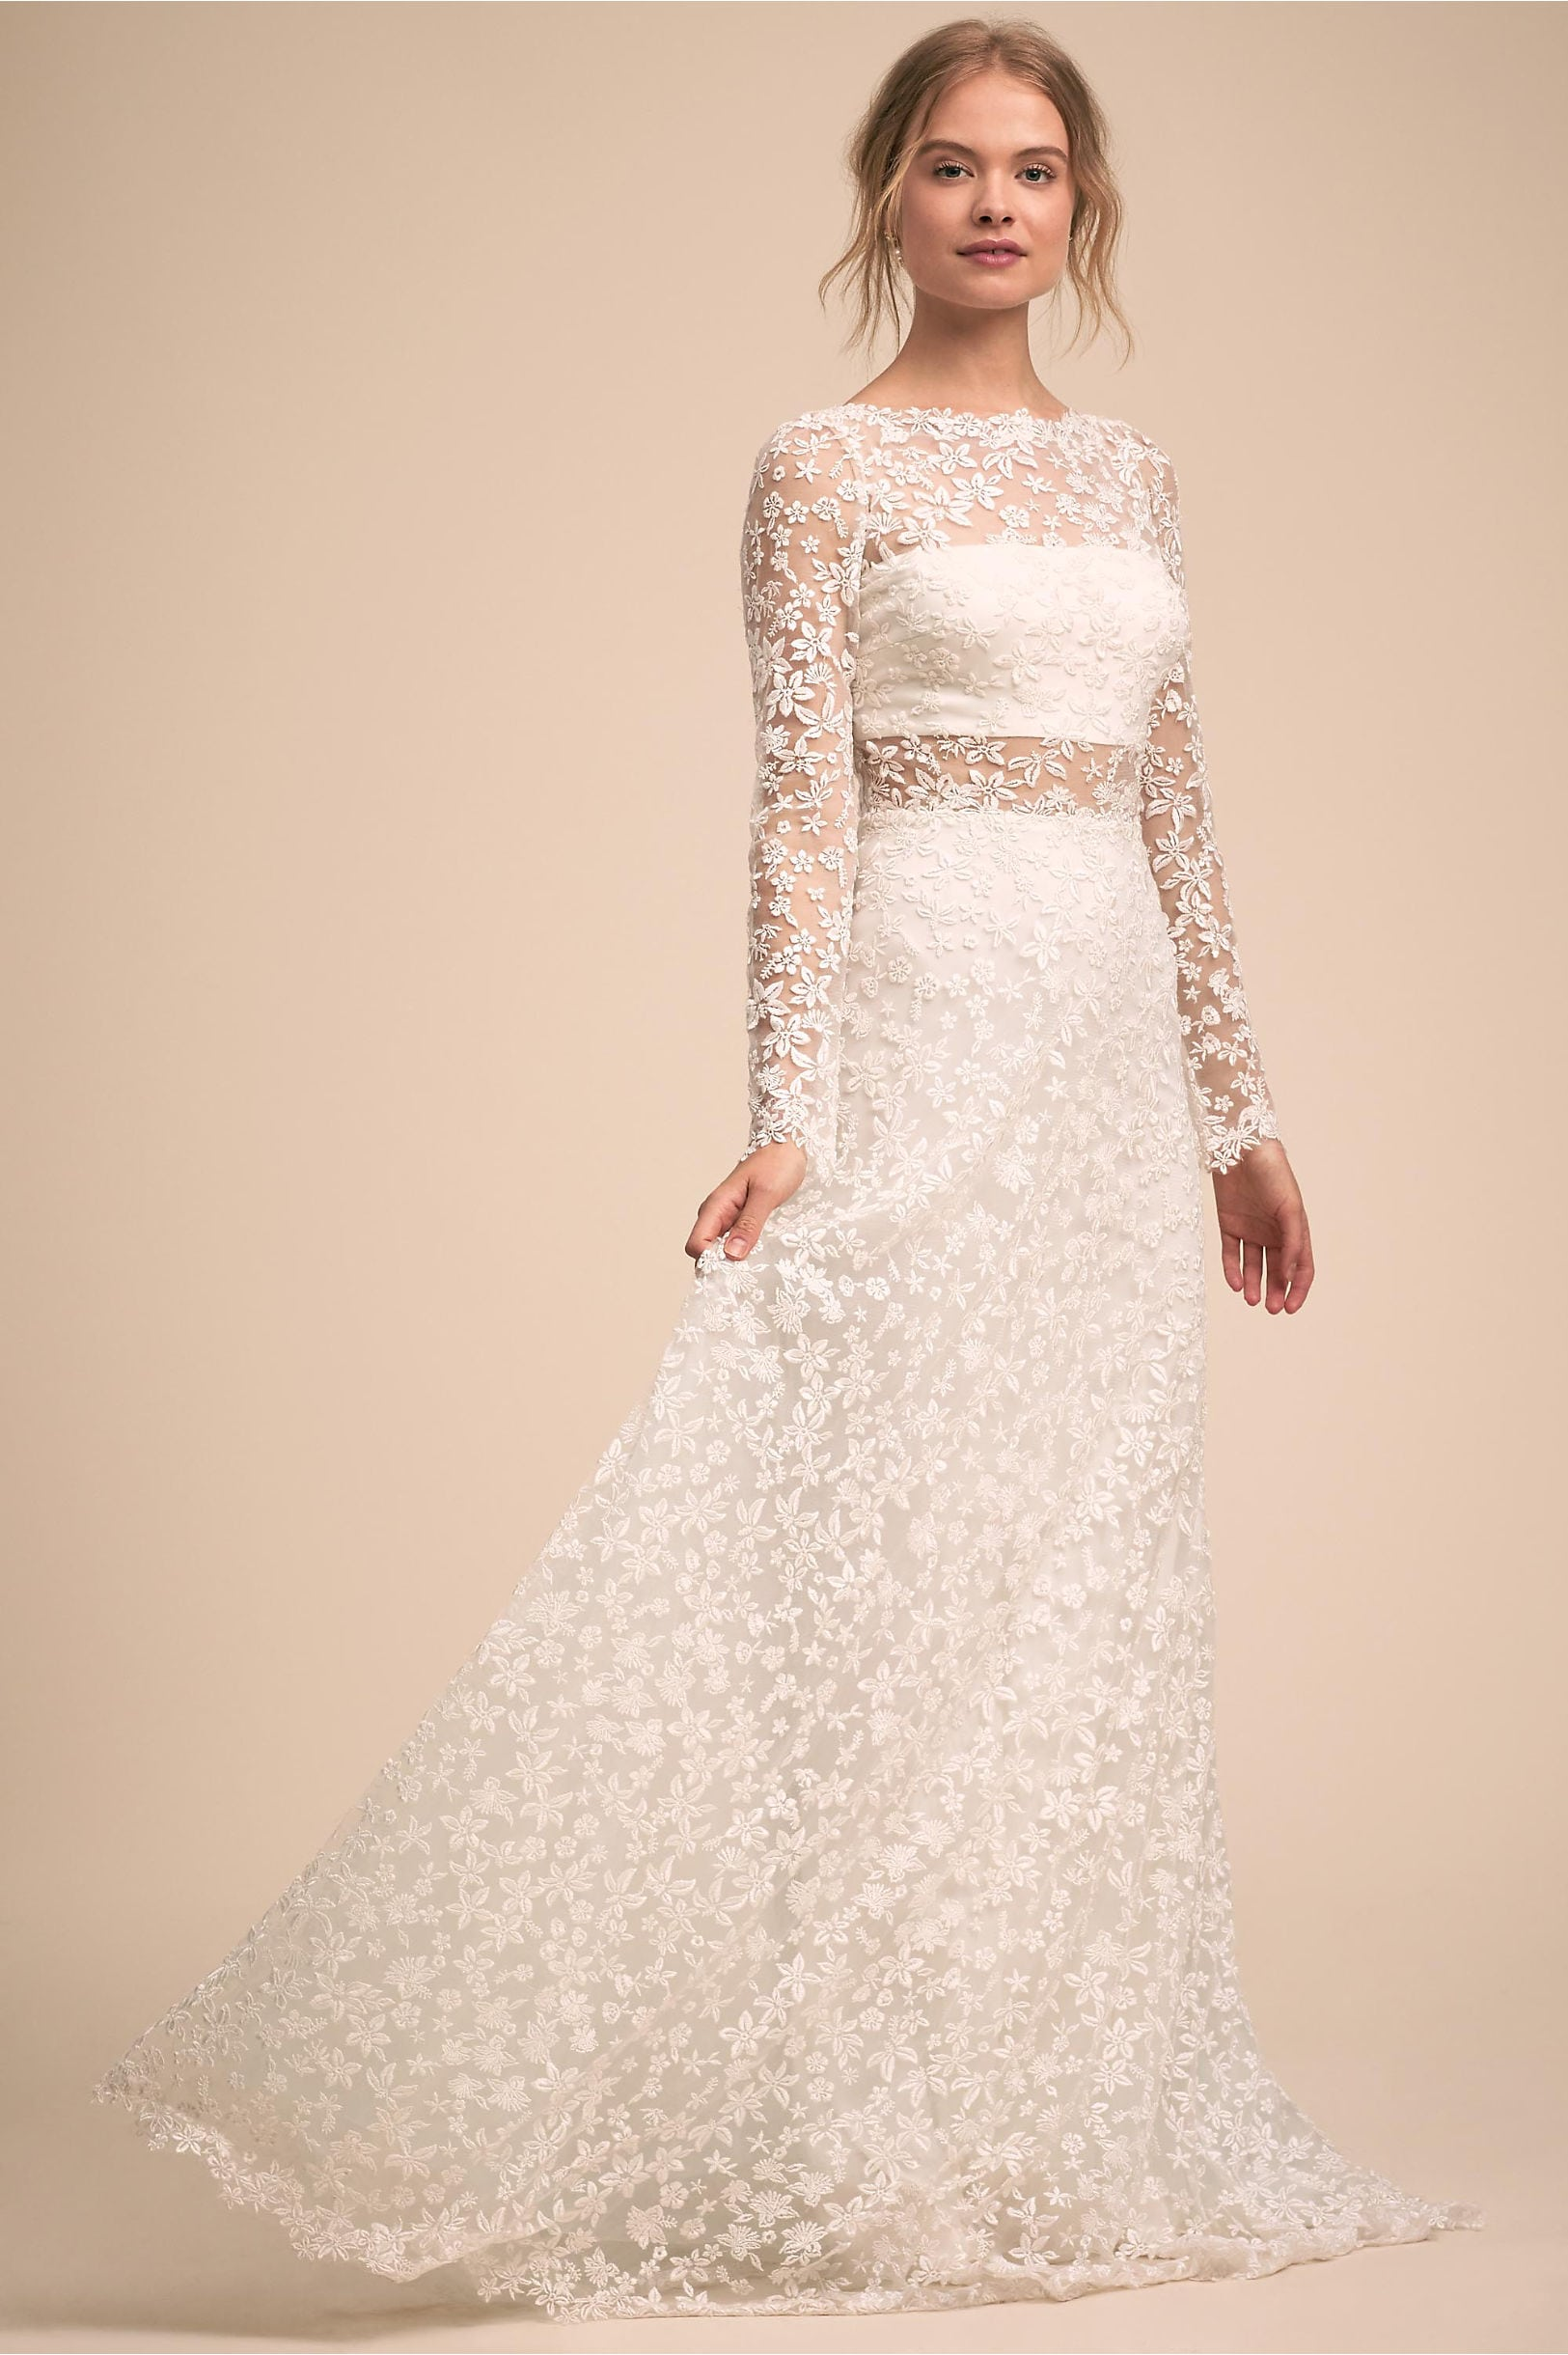 Cellestine Gown: white dress with floral appliqué long sleeve overlay over tube top with A-line skirt from BHLDN